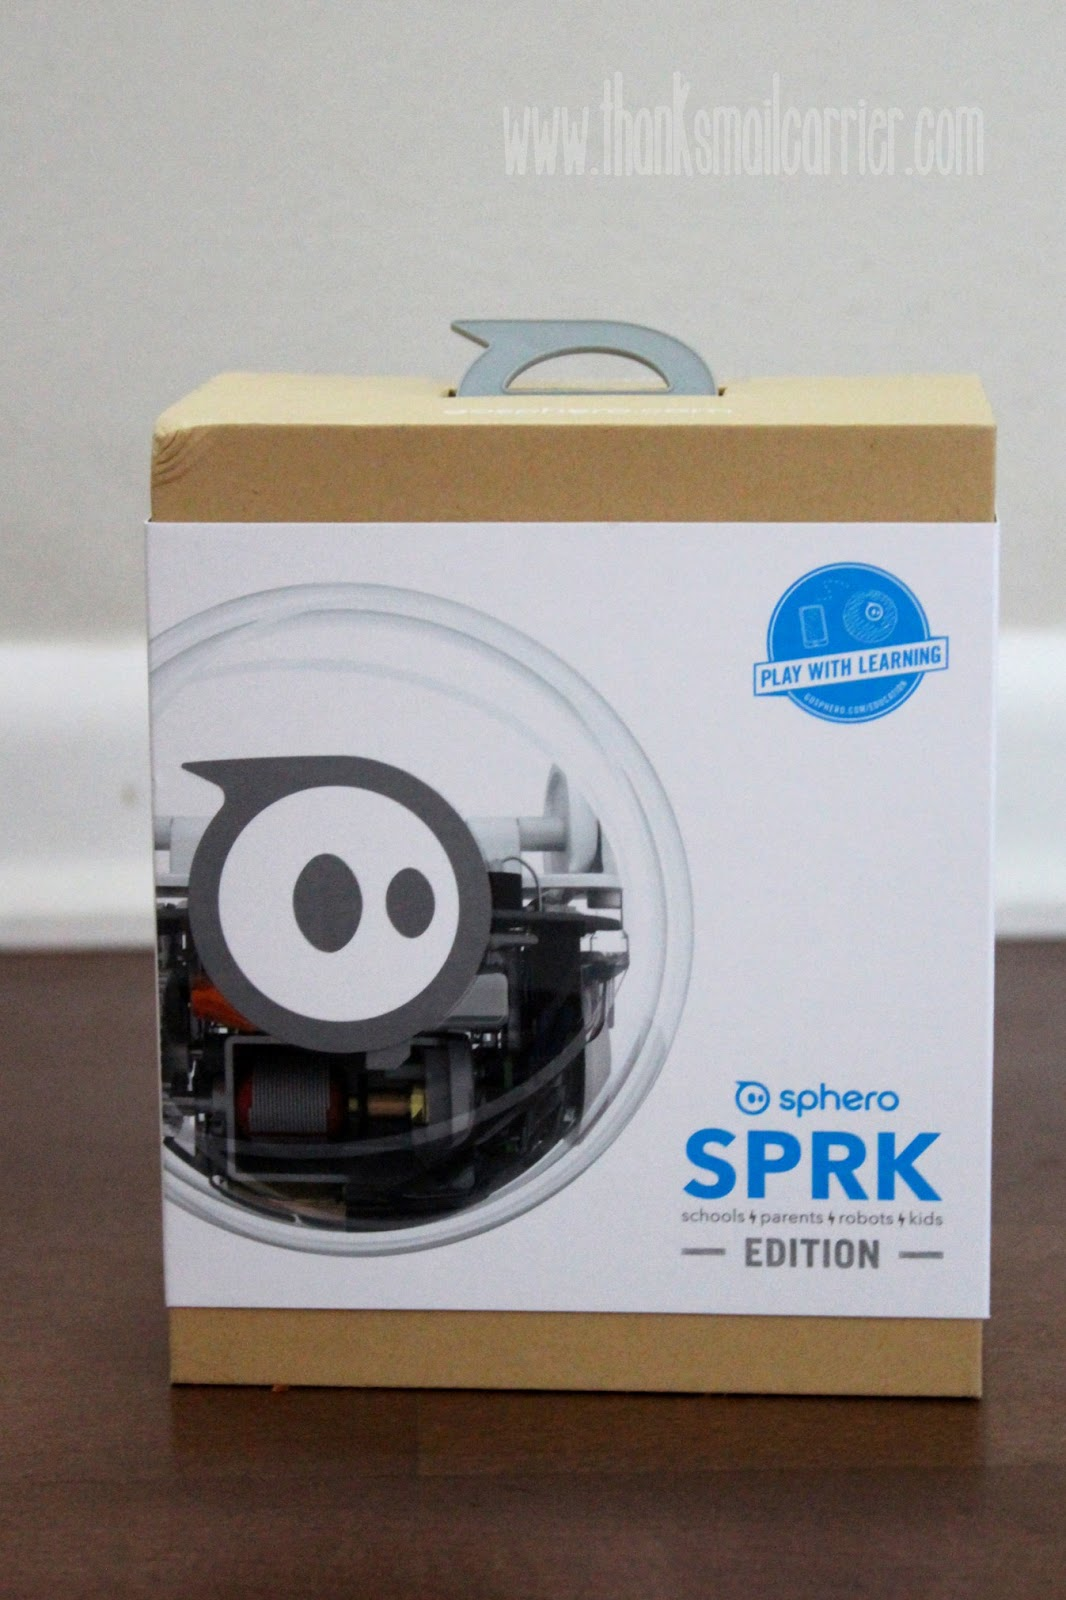 Sphero SPRK box